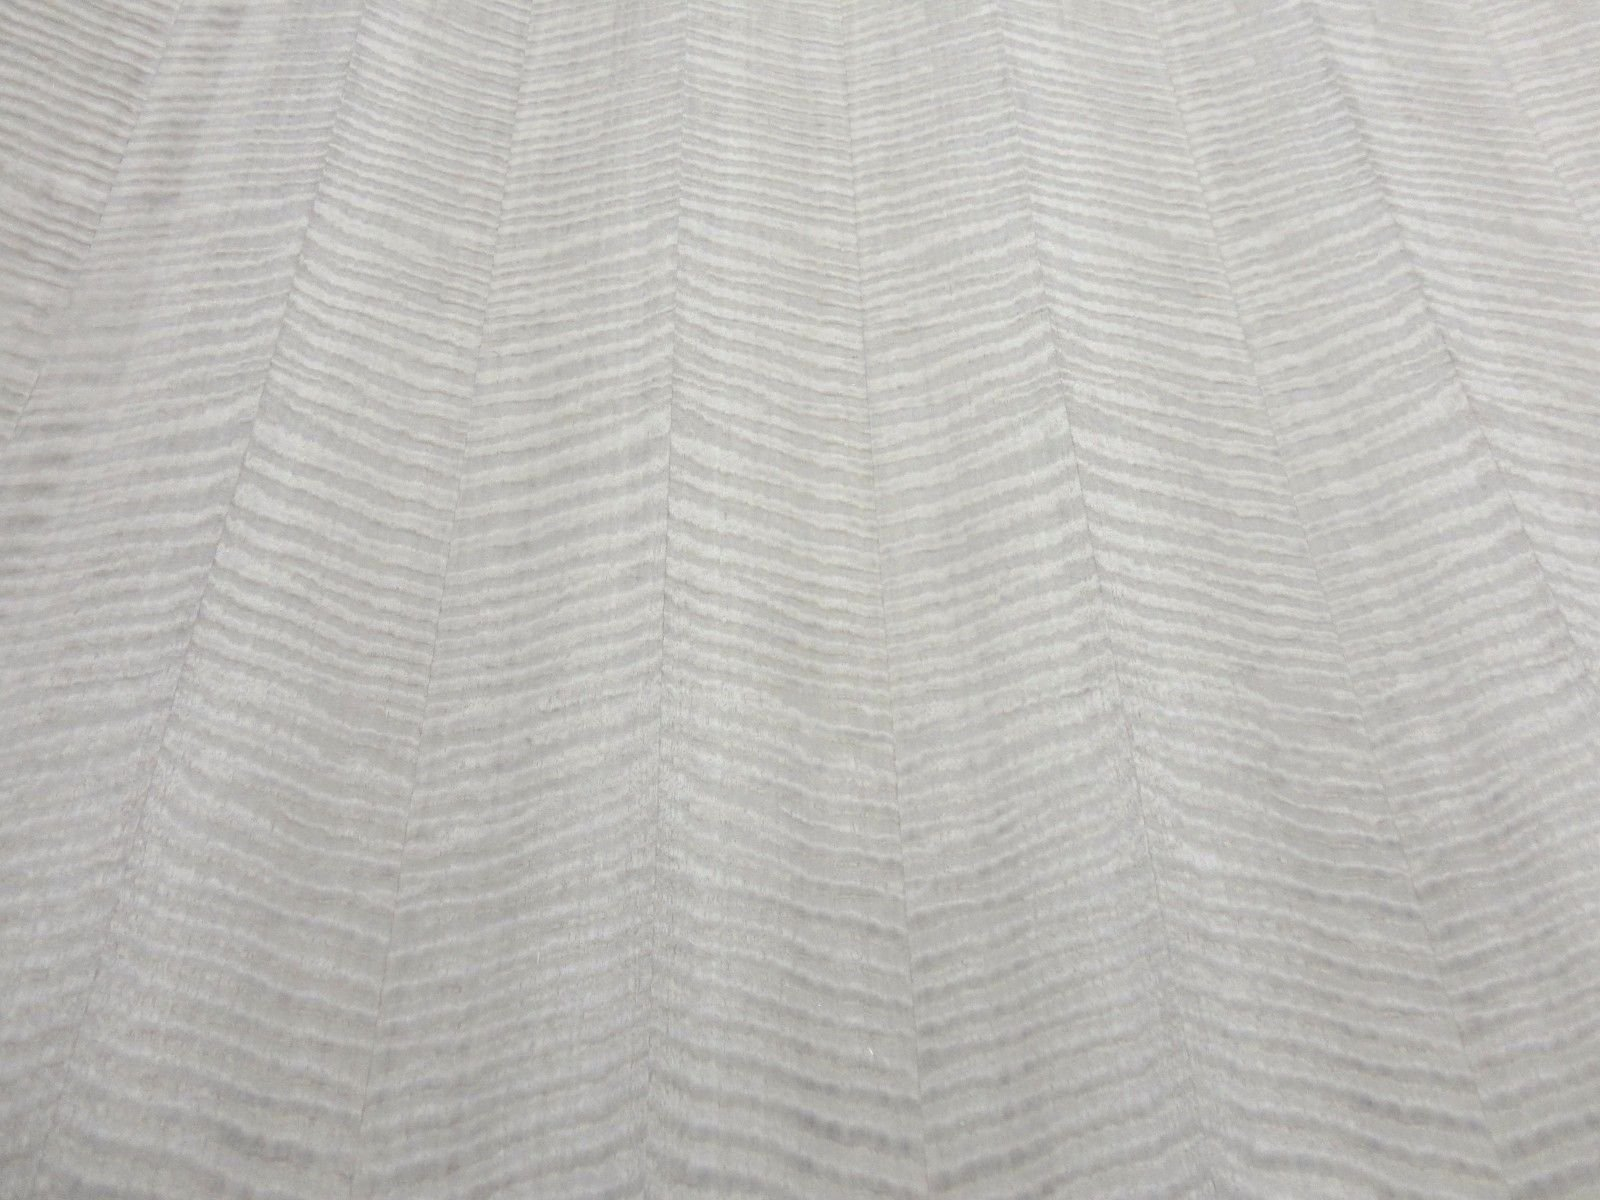 Gray Dyed Figured Anigre wood veneer sheet 48'' x 96'' with paper backer 1/40''